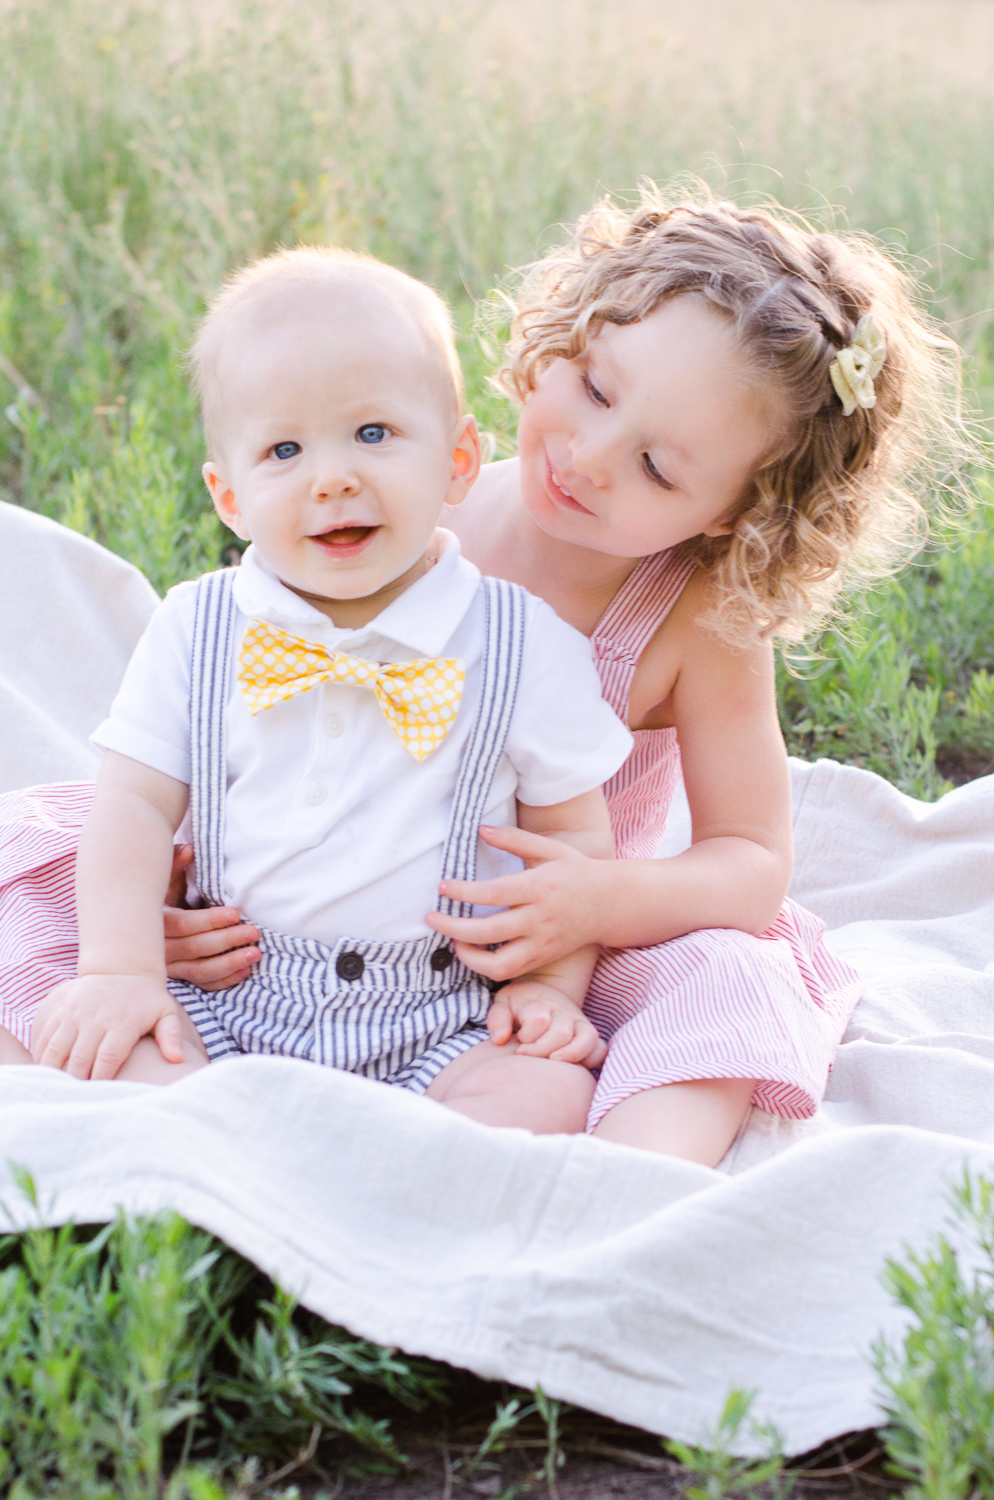 glendale arizona family photographer -02302015.jpg